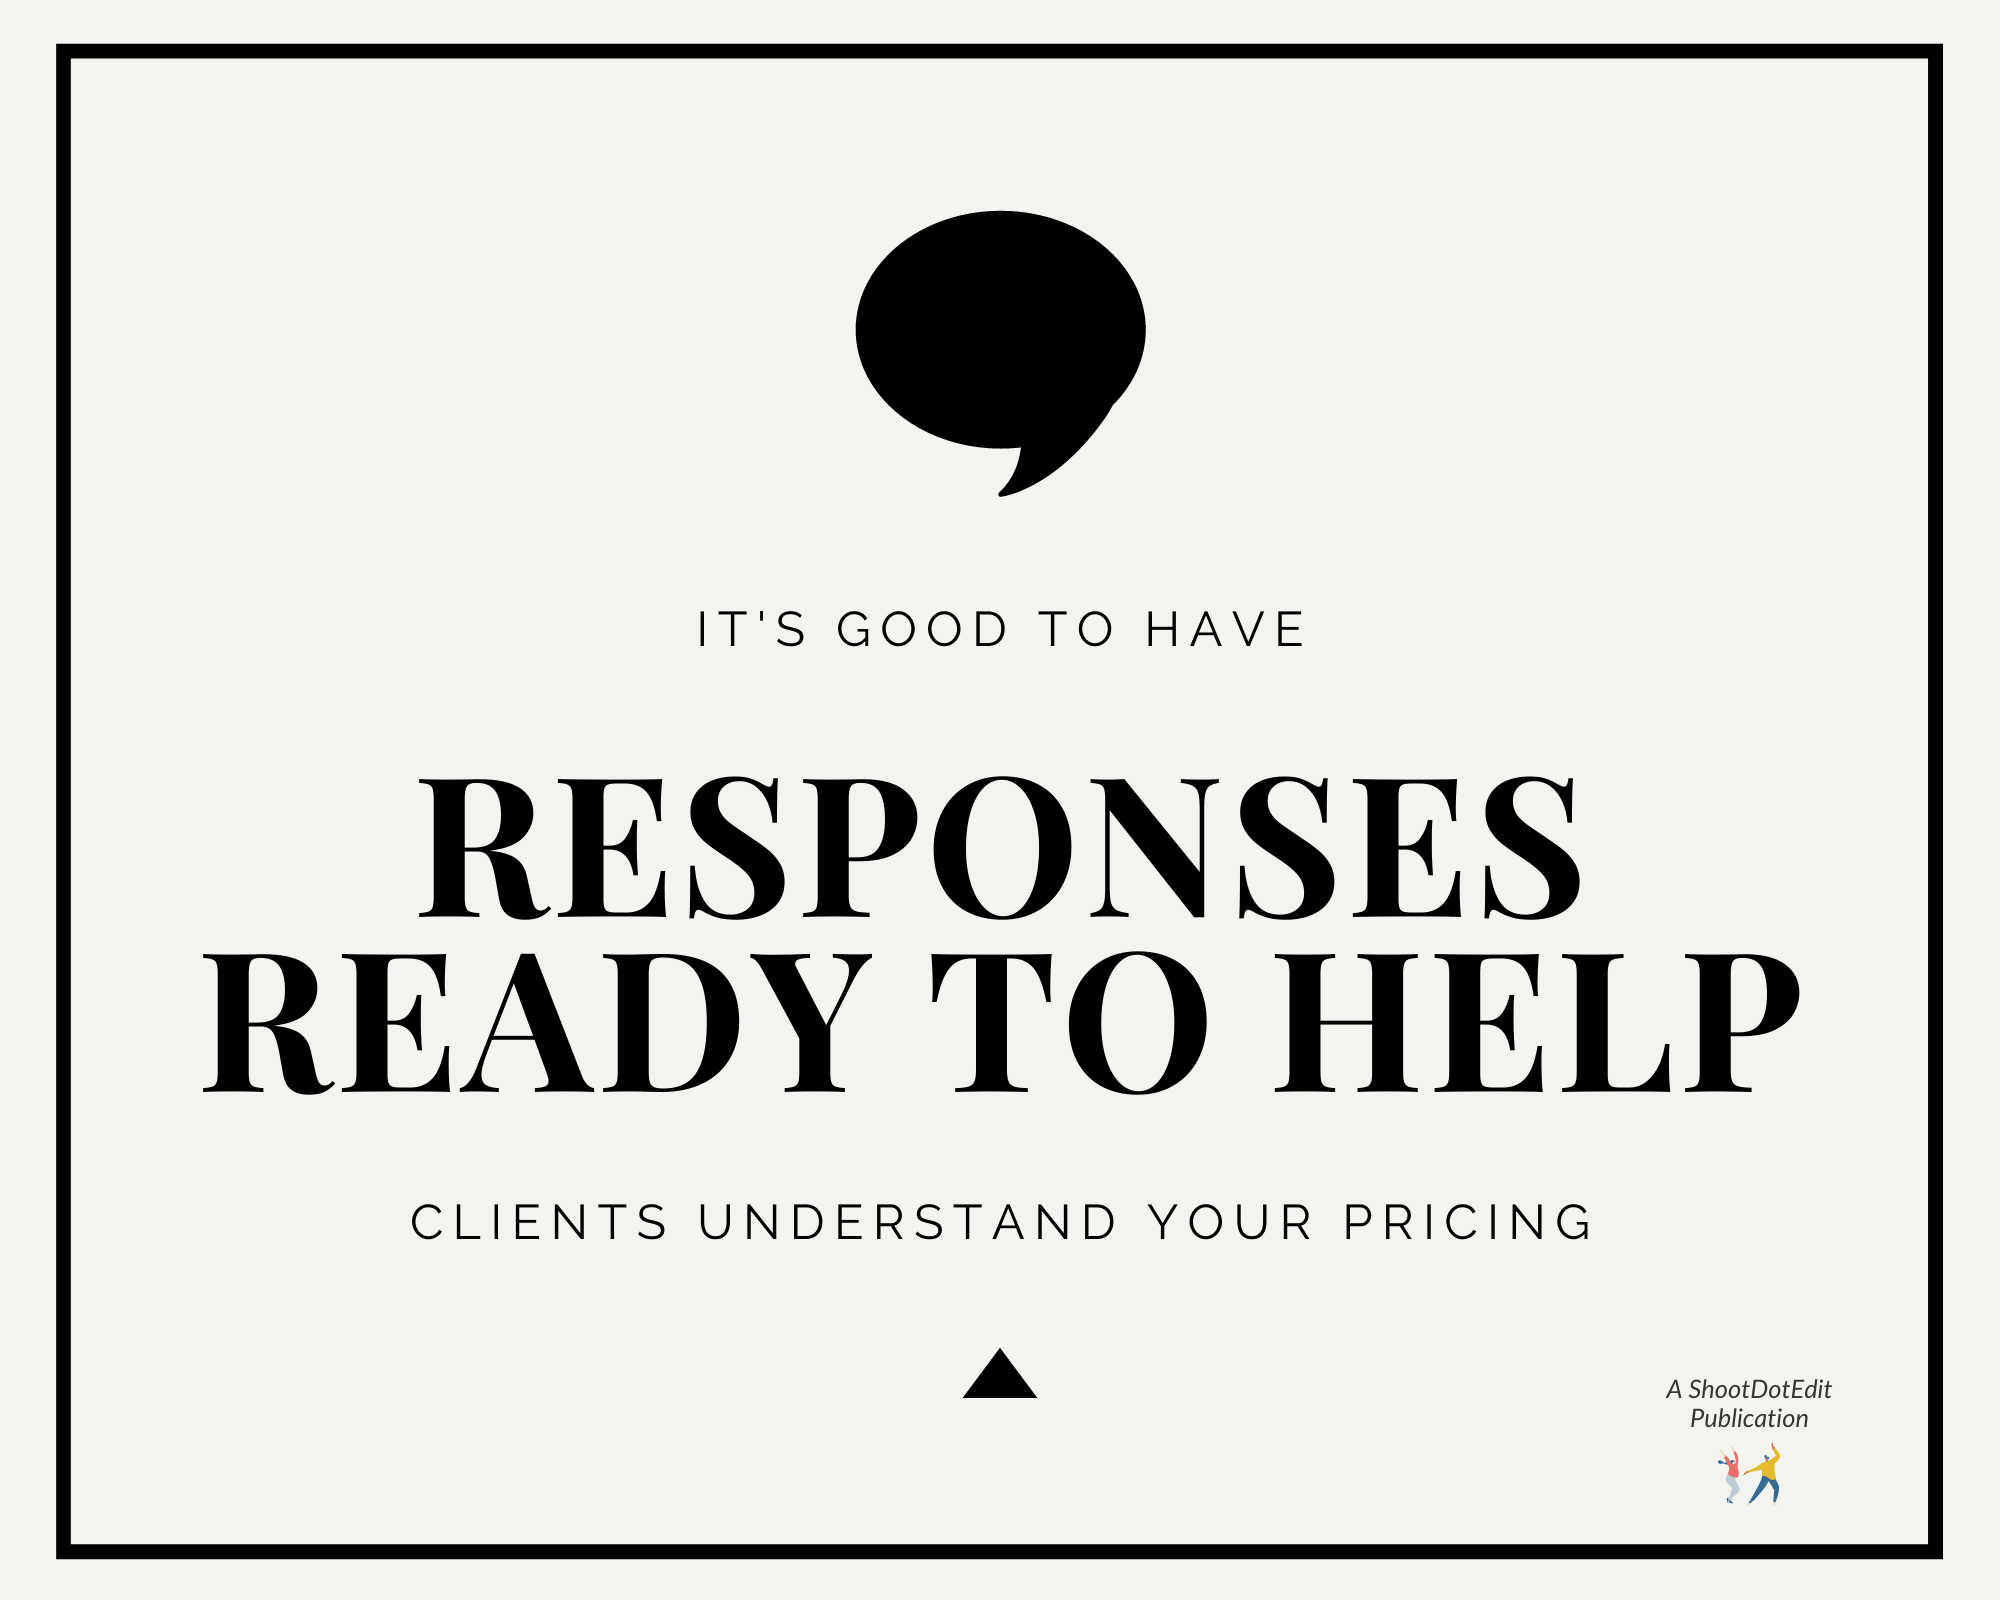 Infographic stating it is good to have responses ready to help clients understand your pricing